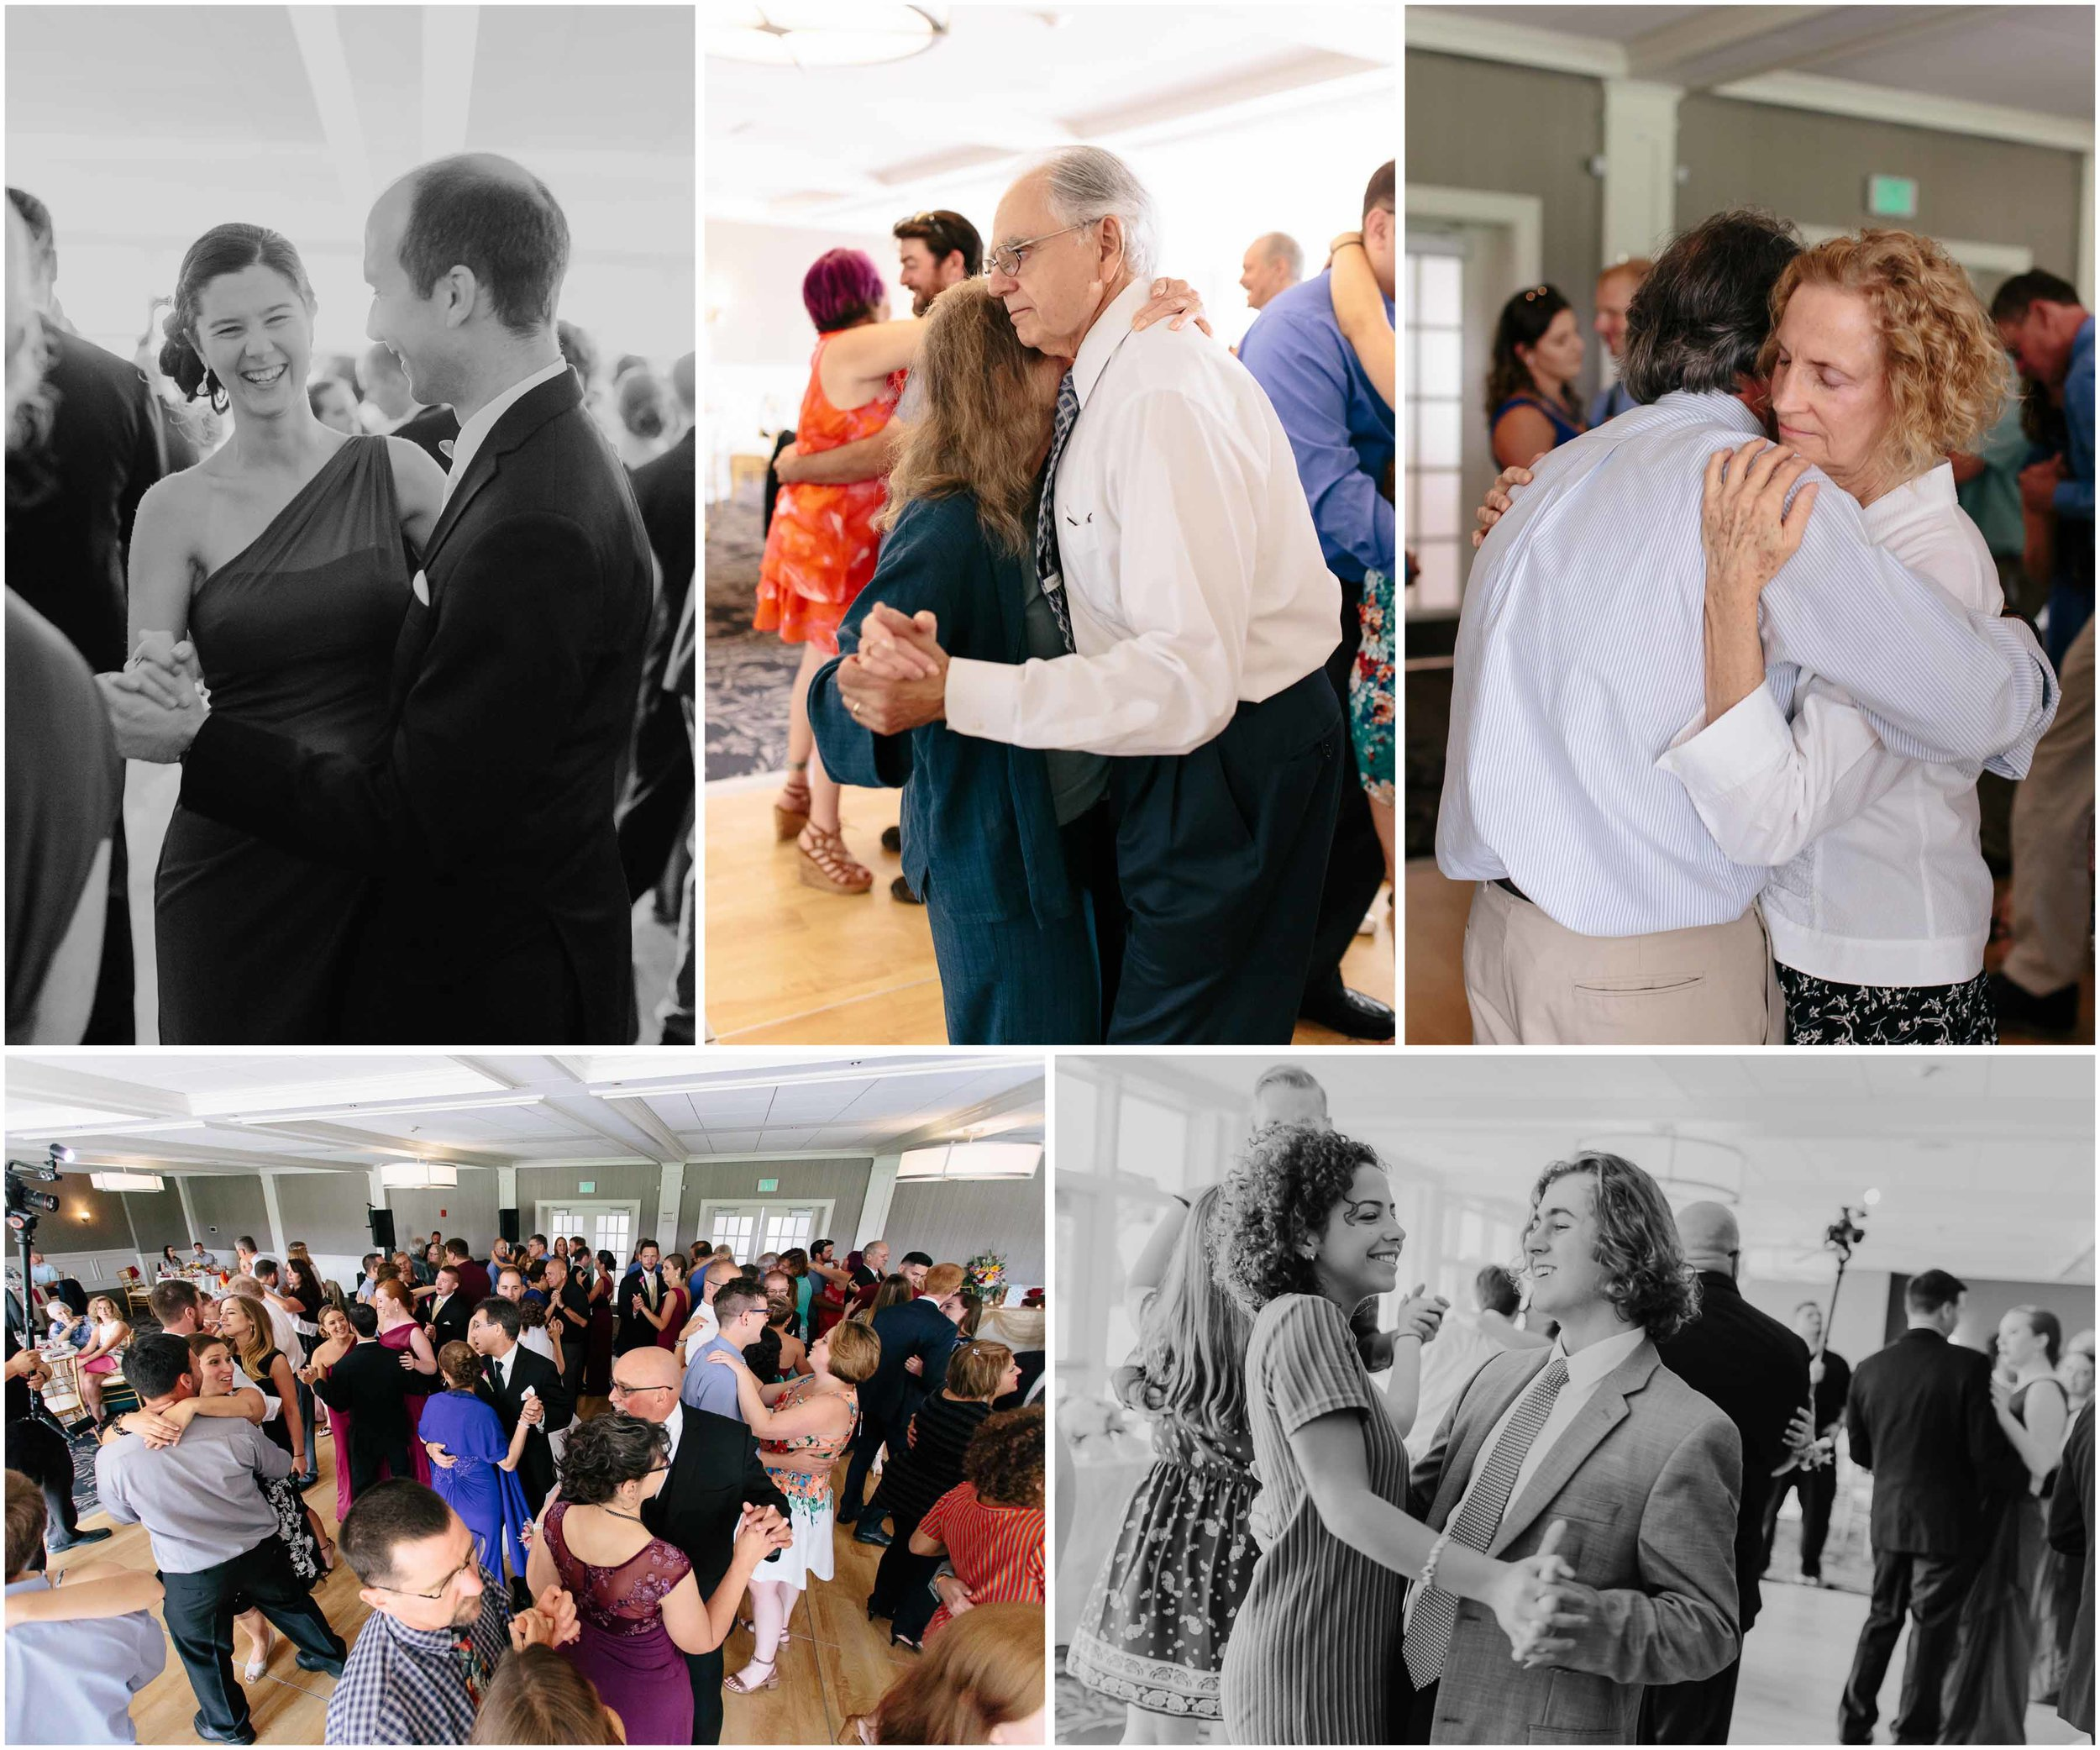 Chic New Hampshire Wedding at Manchester Country Club Bedford - dancing